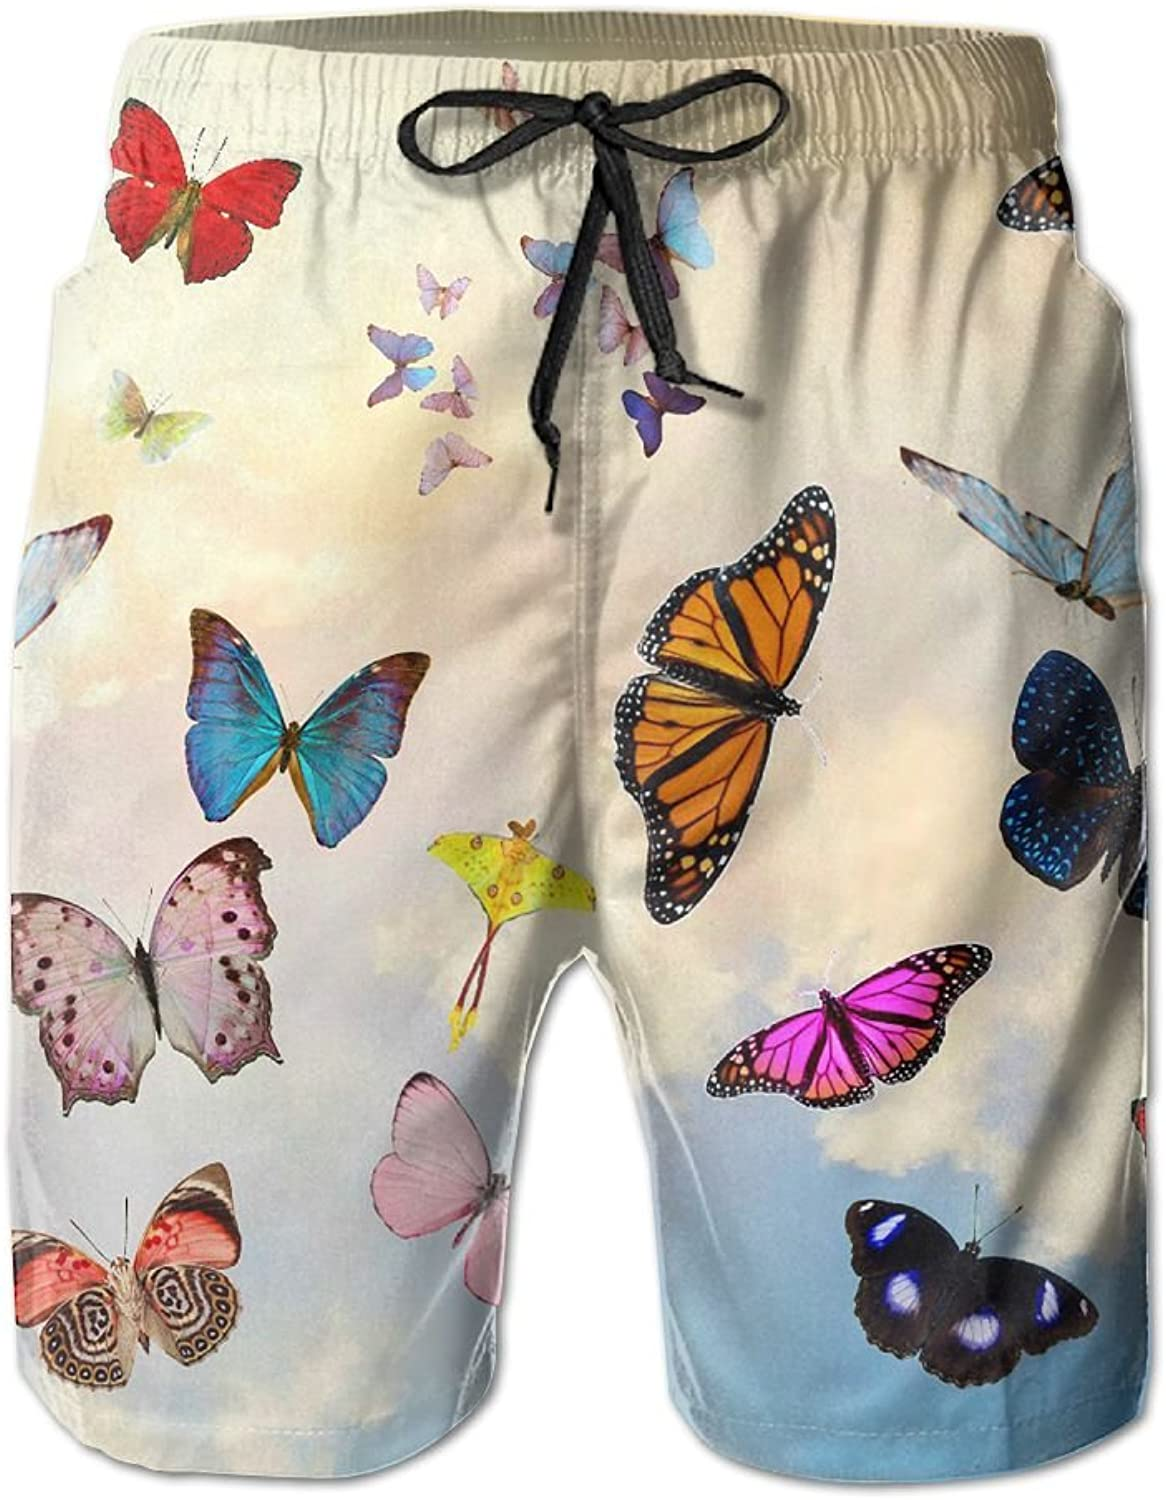 d56afe7b7e Quick Dry Beach Shorts Butterfly Sky Surfing Surfing Surfing Trunks Board  Pants With Pockets For Men fd7120